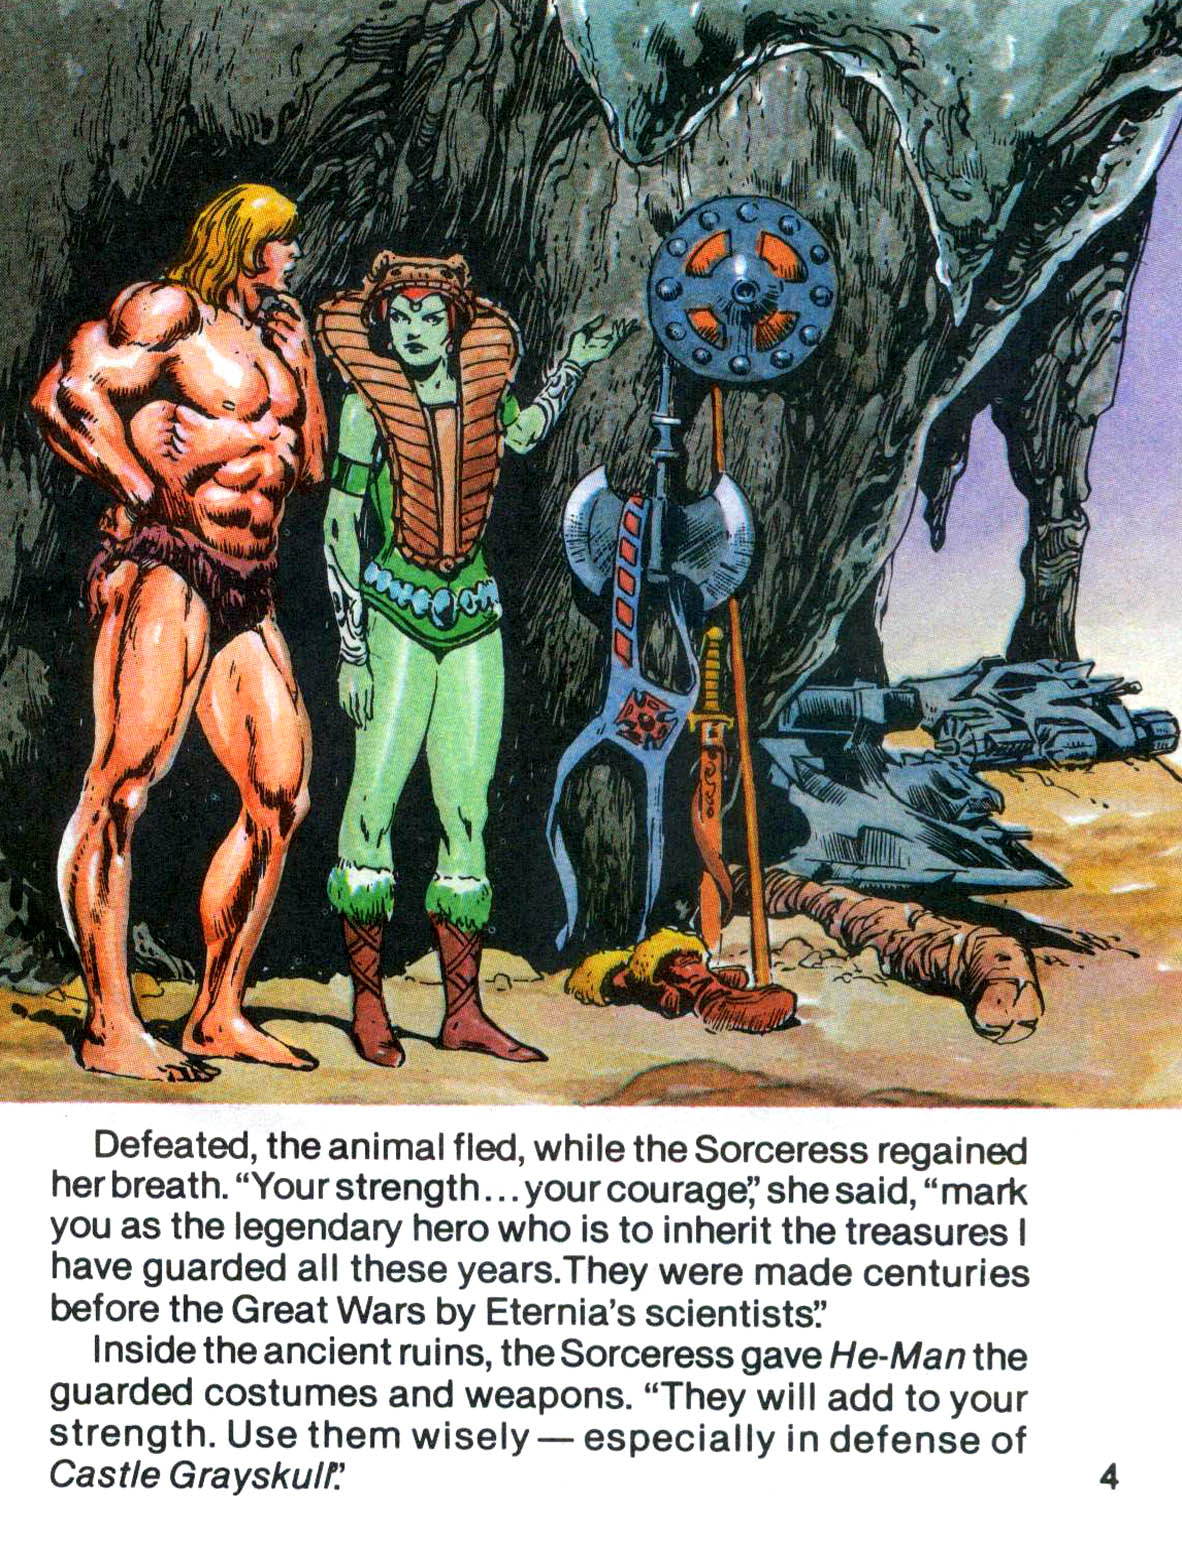 The original mini-comics were more like a story book, with different takes on He-Man and the Sorceress